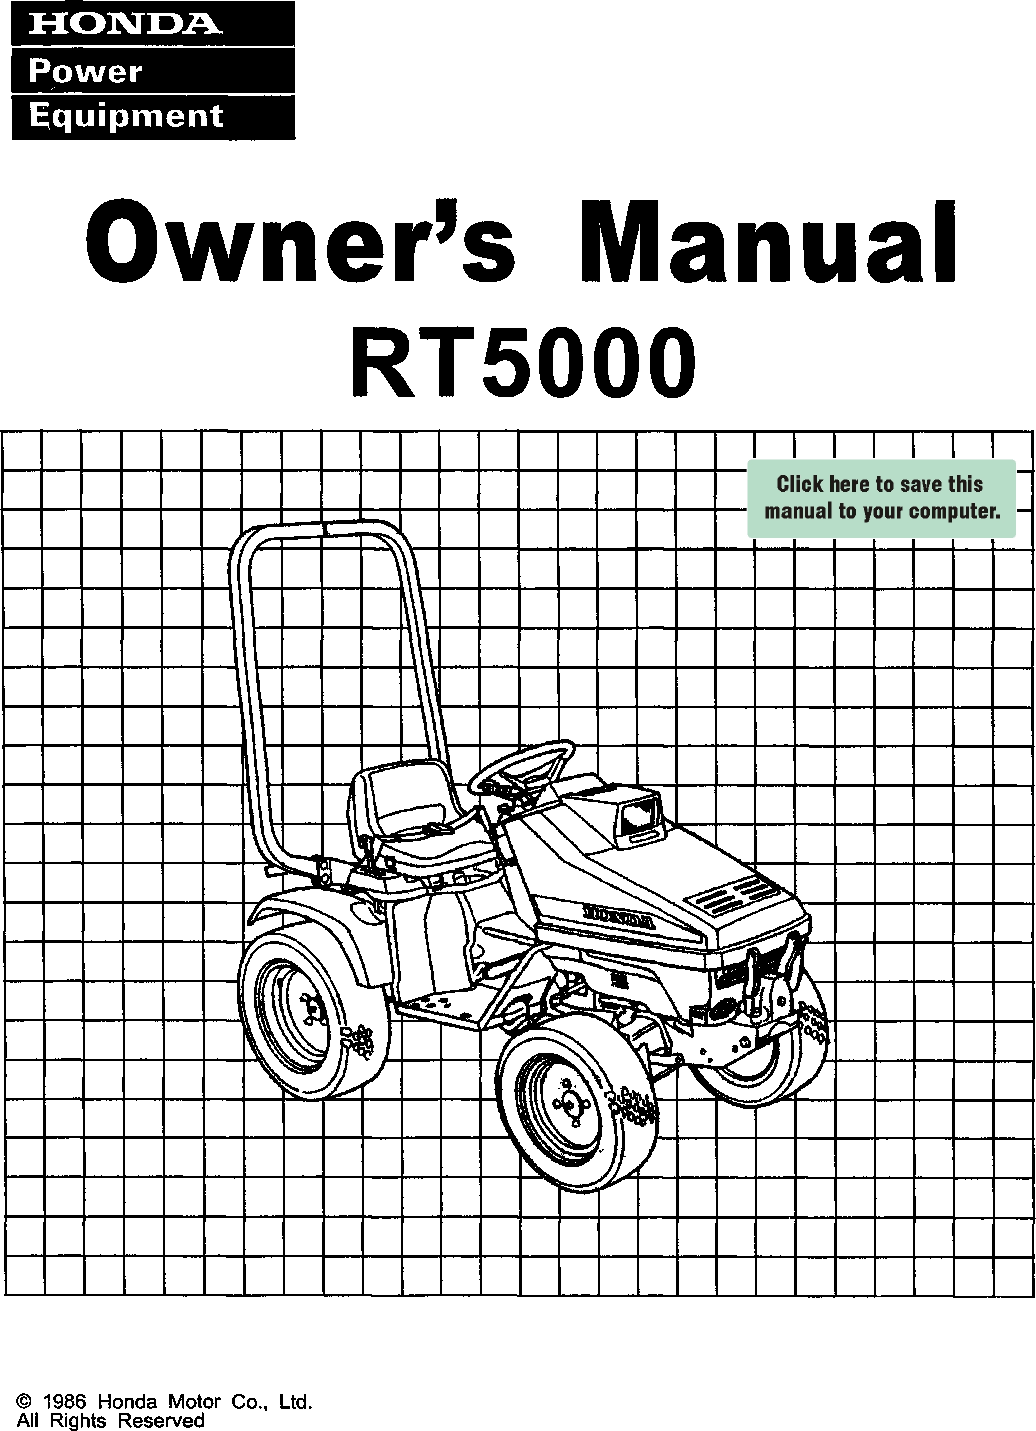 Honda Rt5000 Owners Manual